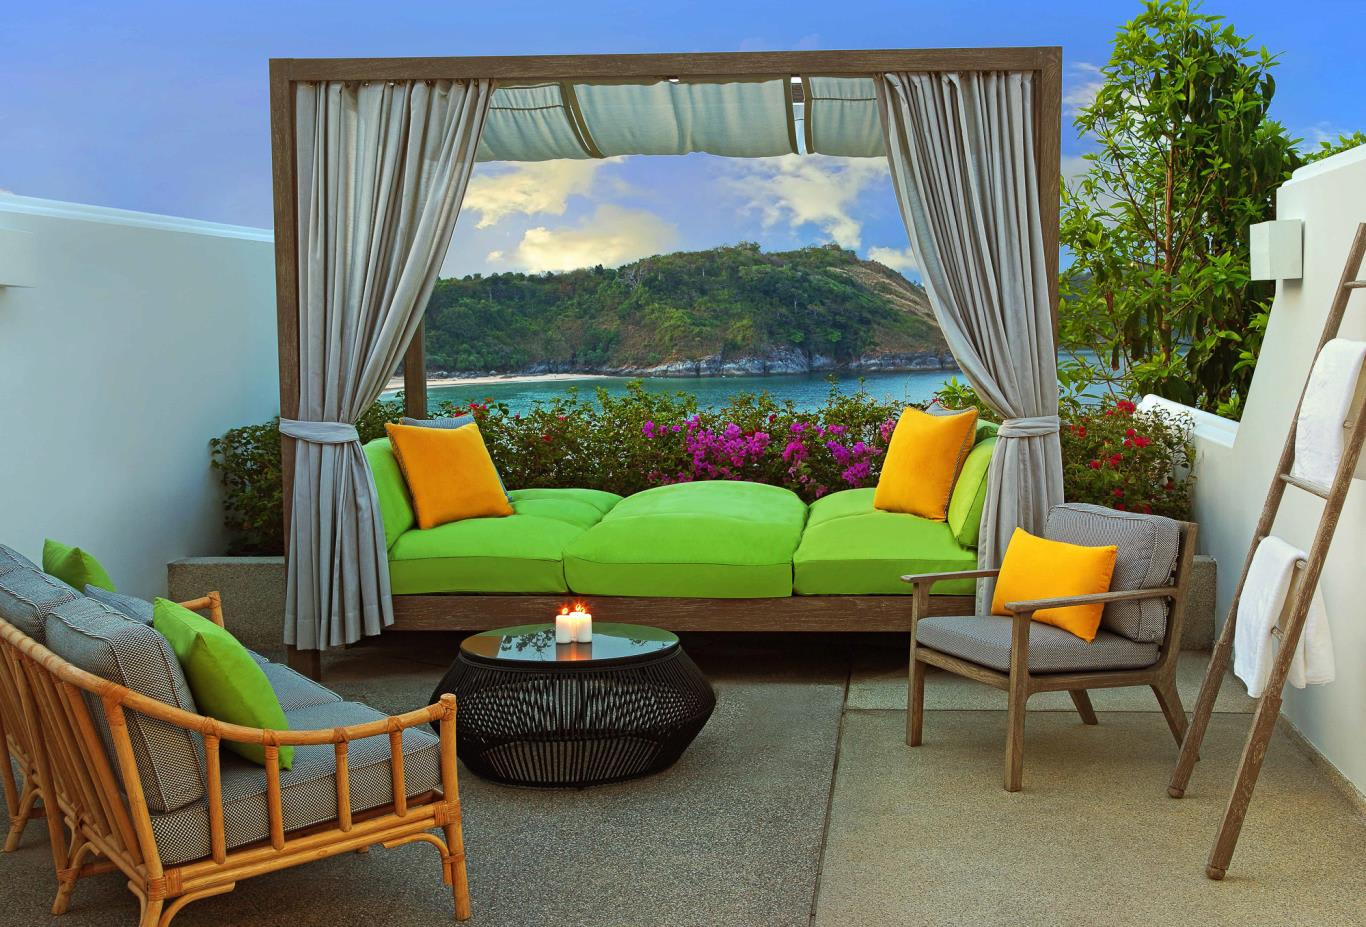 Terrace with daybed